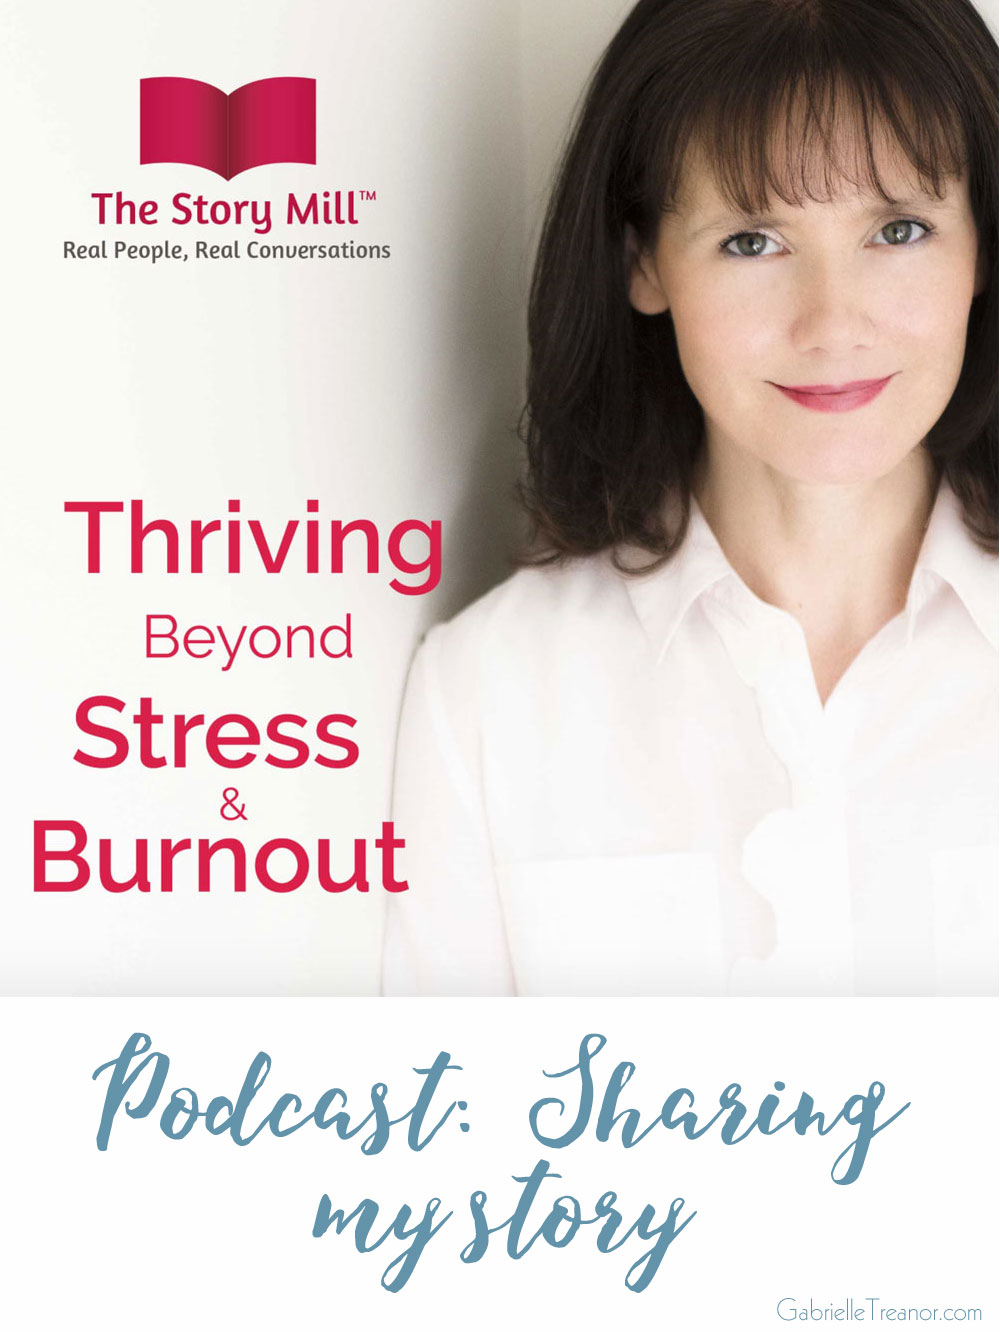 Thriving-Beyond-Stress-Burnout-podcast-Gabrielle-Treanor